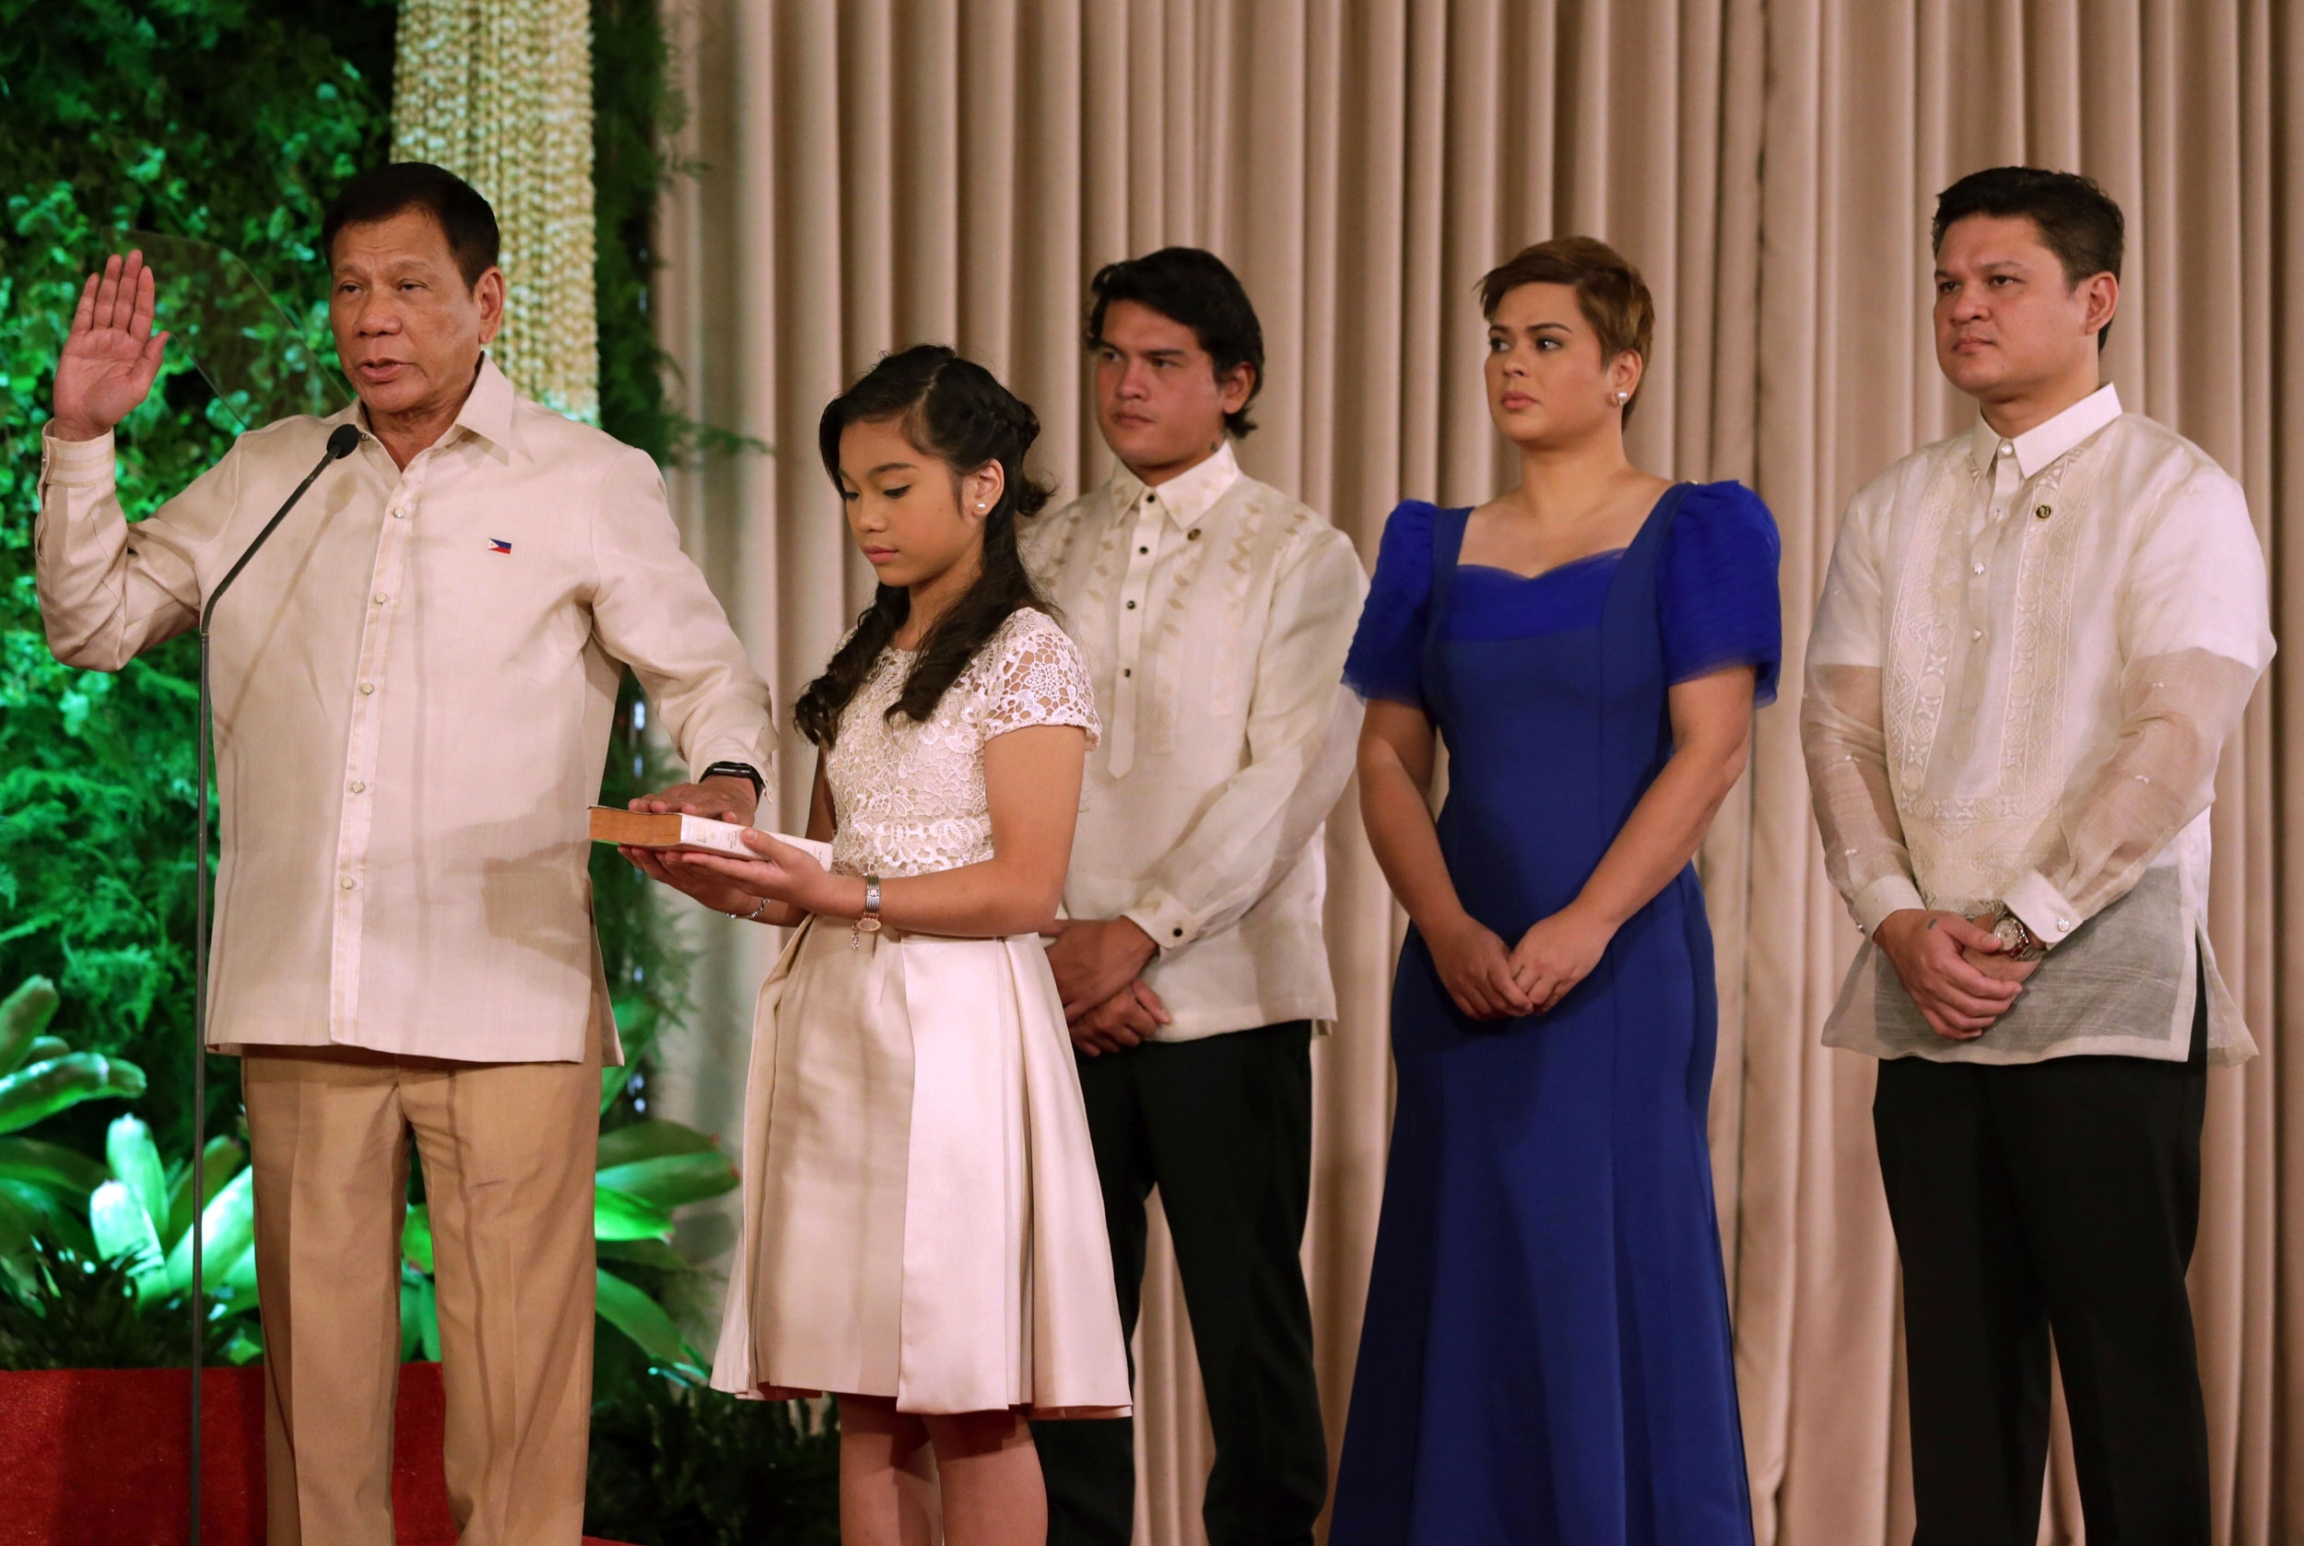 Sara Duterte pictured here during her father's swearing-in ceremony as president of the Philippines.